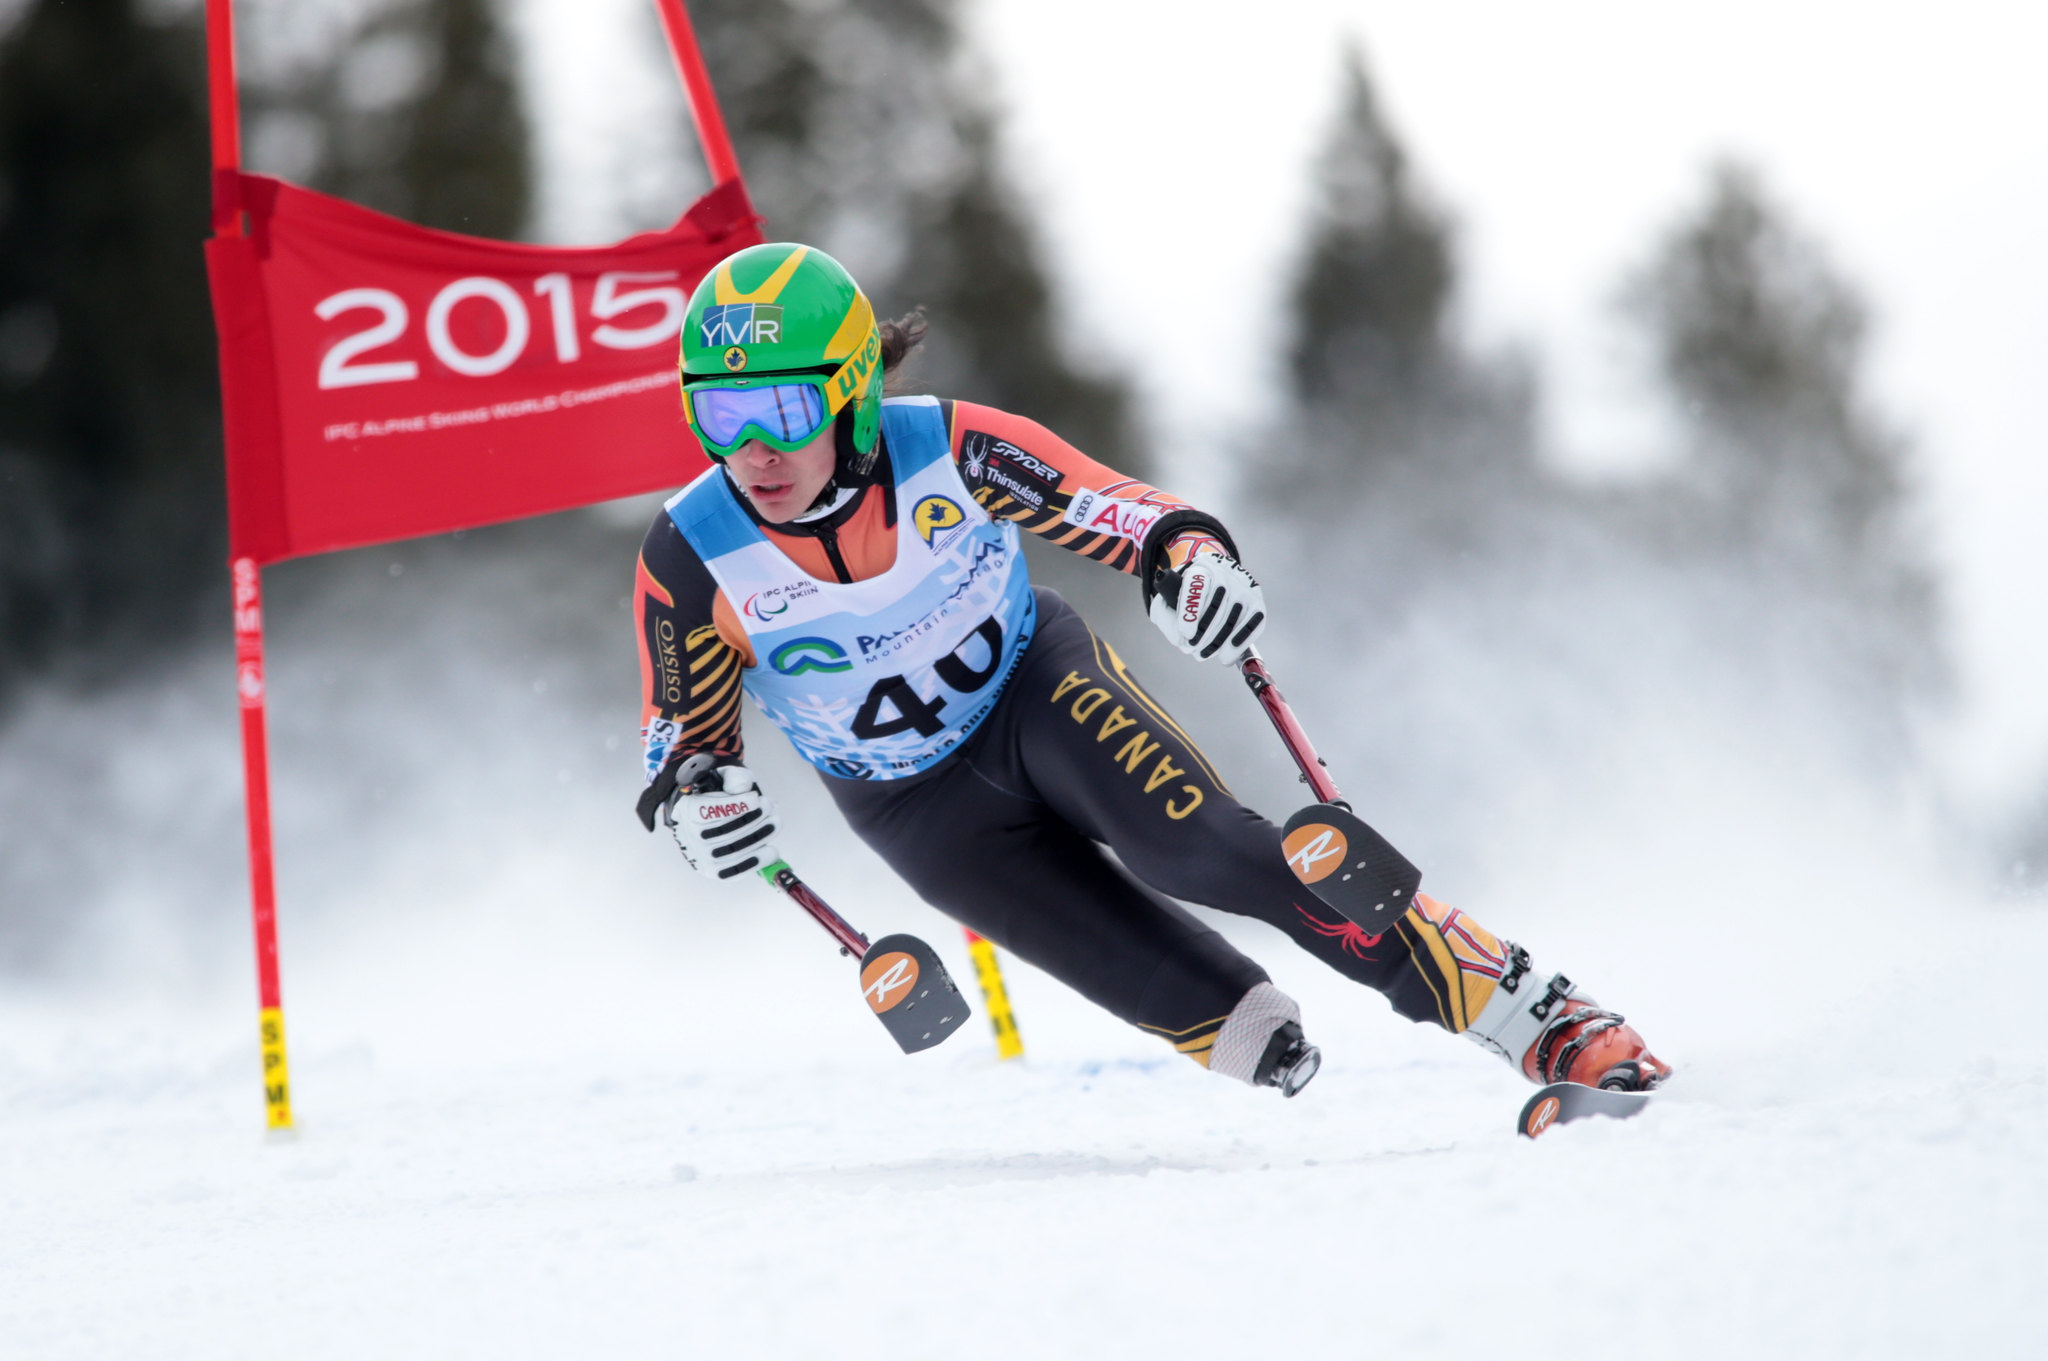 Braydon Luscombe in action during the Super-G in Panorama, CAN